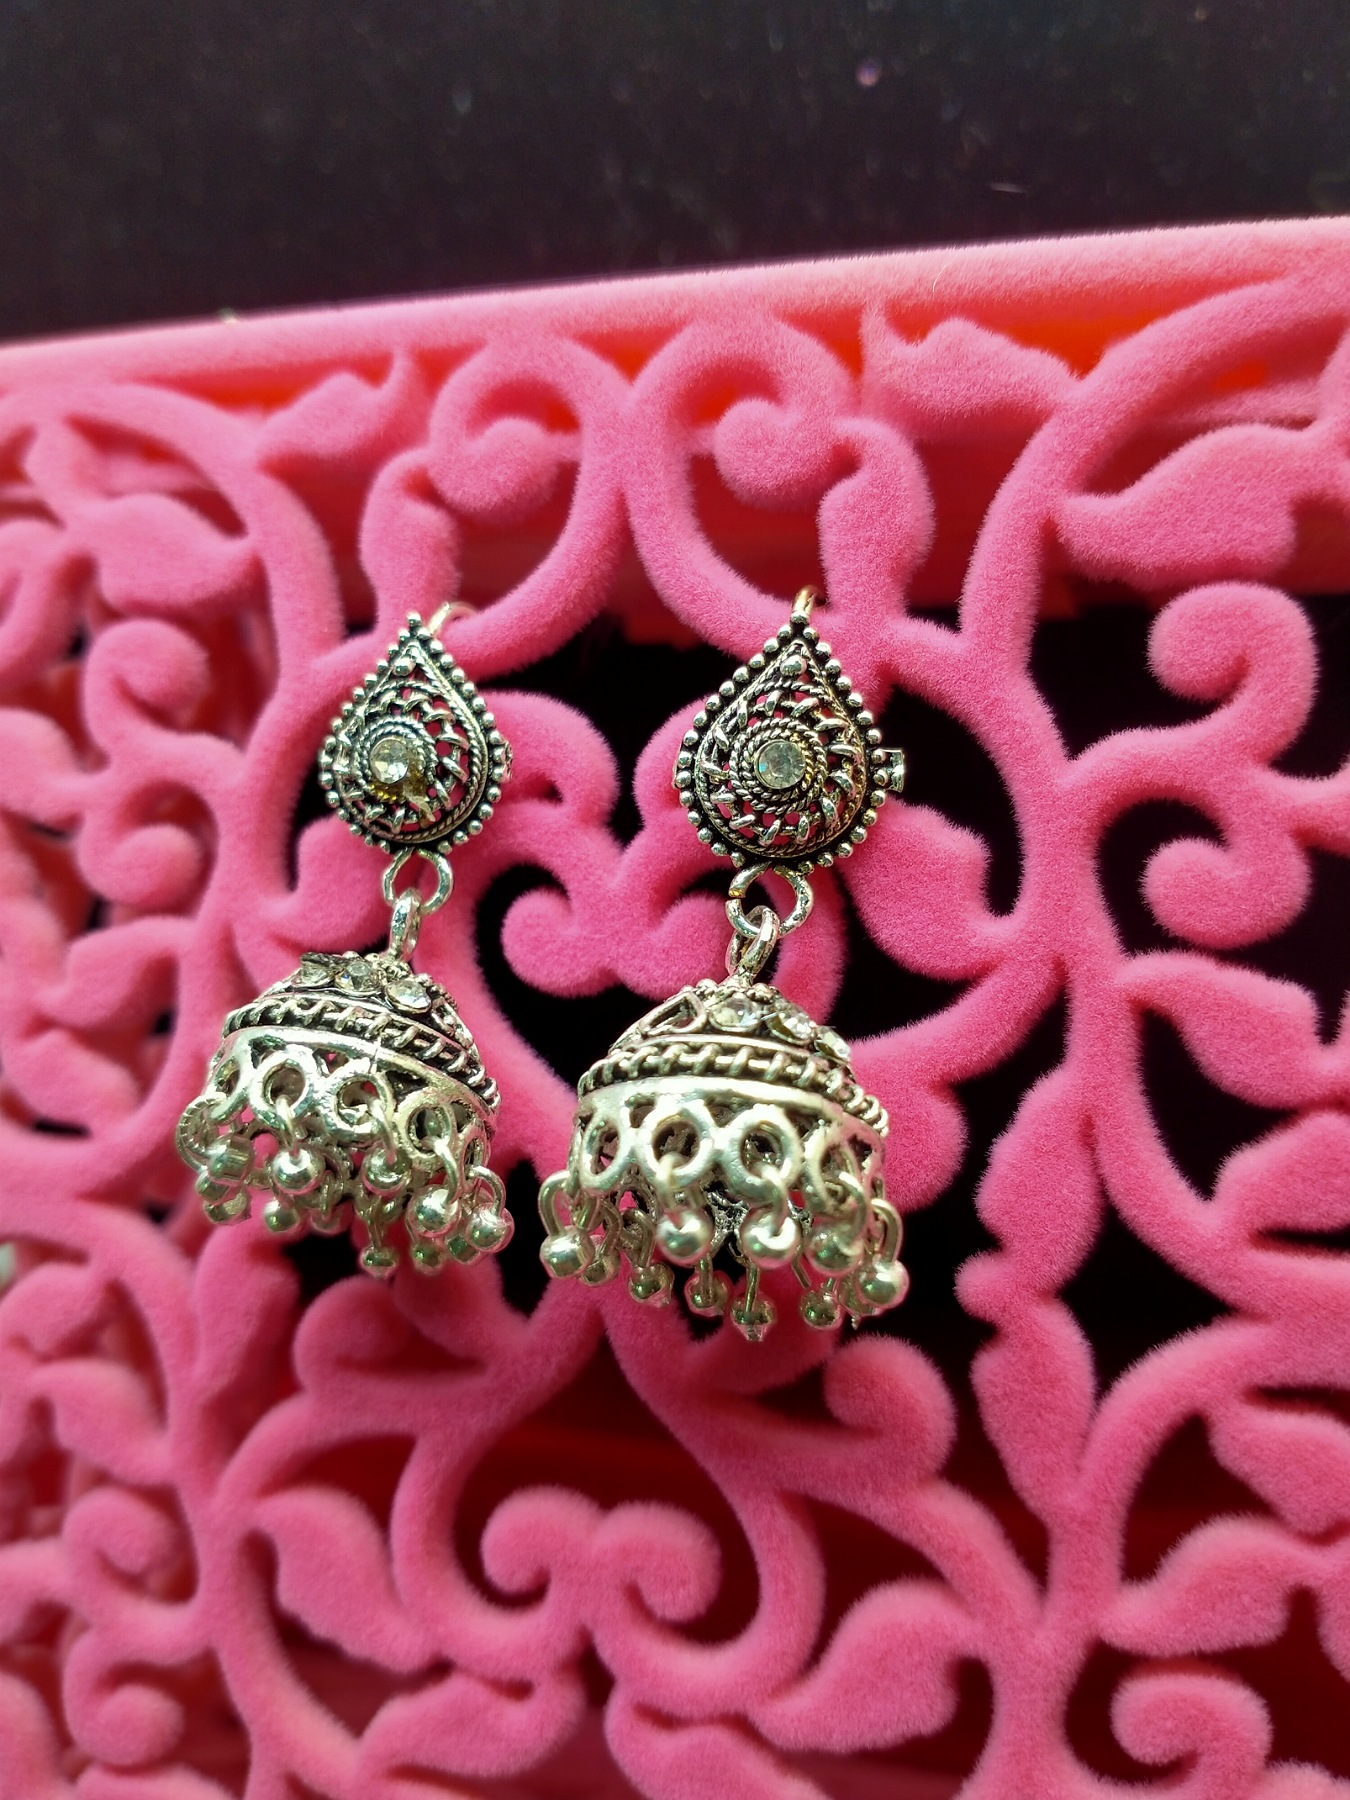 Fashionable and stylish high quality jewelry earings jhumki in different colors